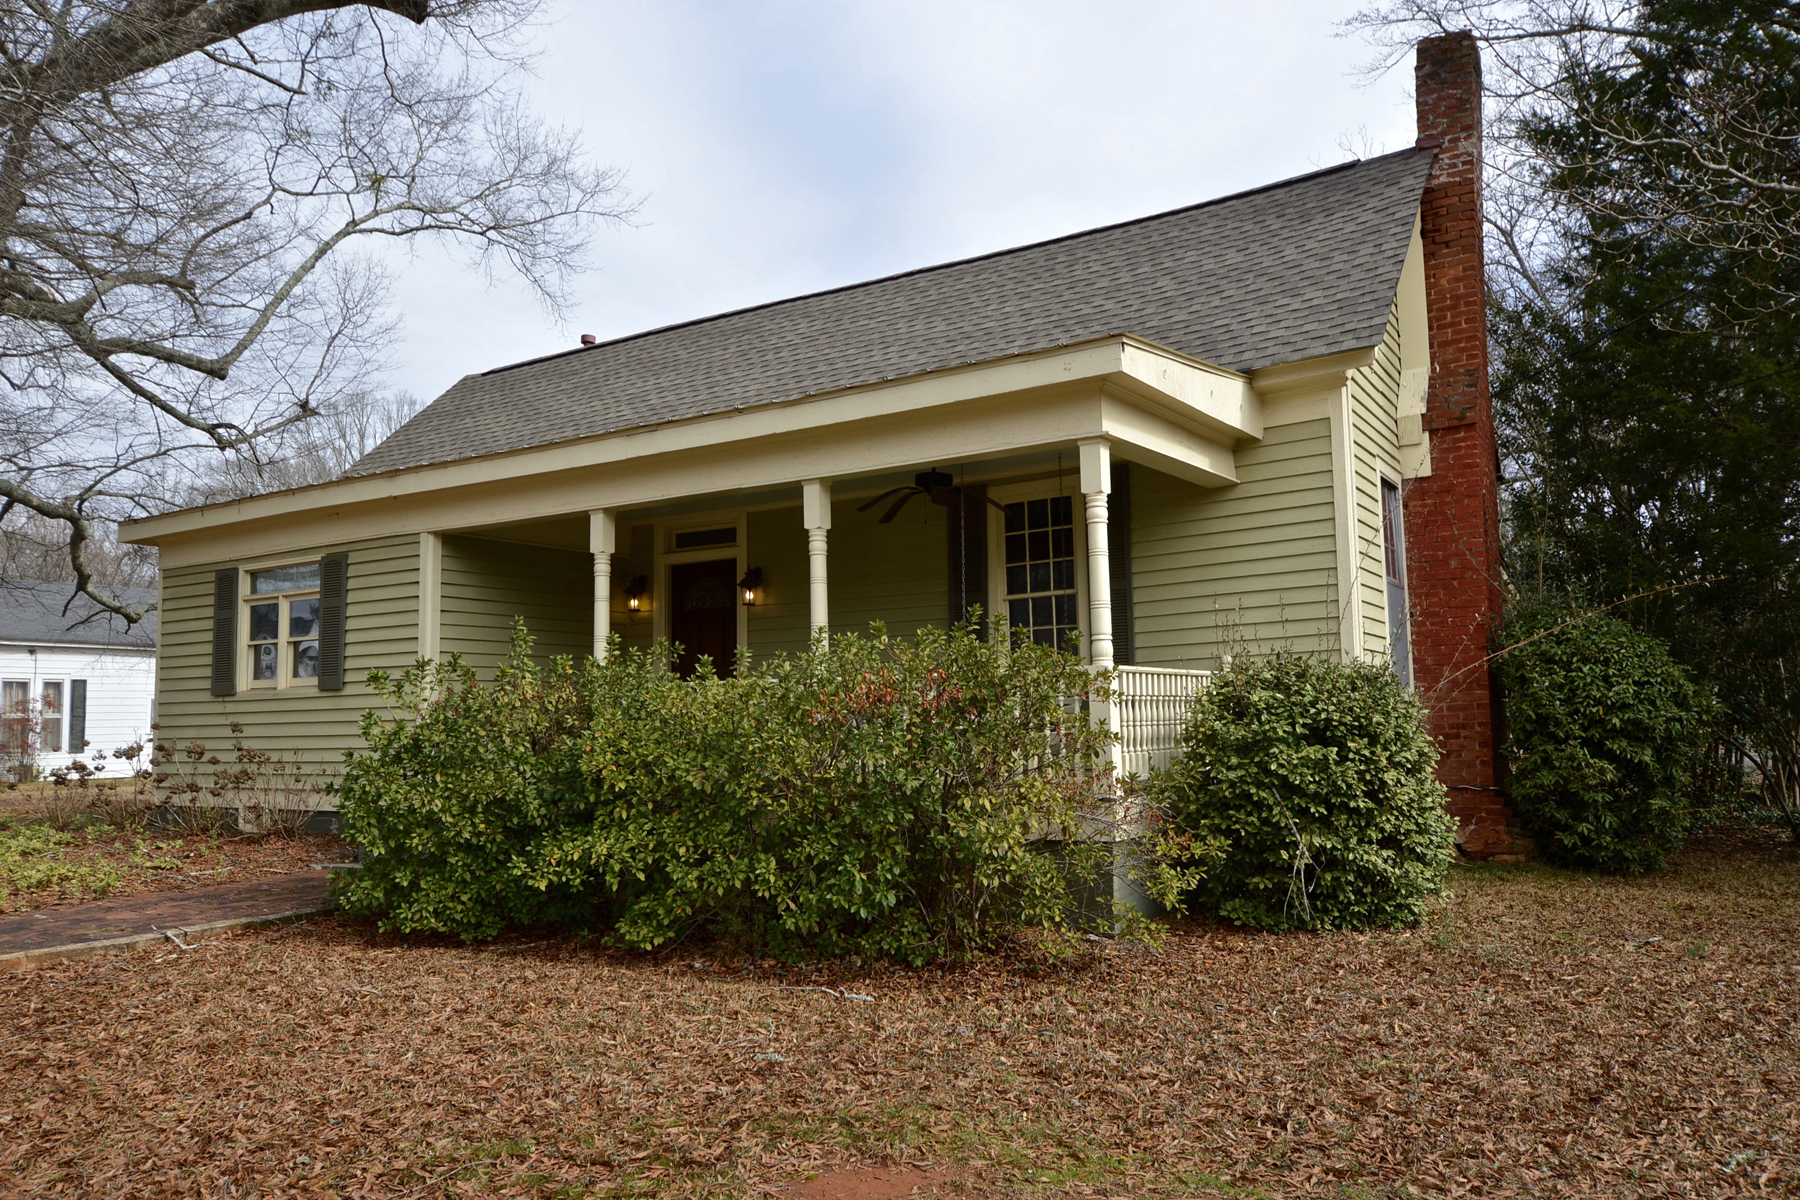 Maison unifamiliale pour l Vente à Charming Historic Home In Downtown Senoia On Beautiful Large Level Lot 471 Pylant Street Senoia, Georgia, 30276 États-Unis